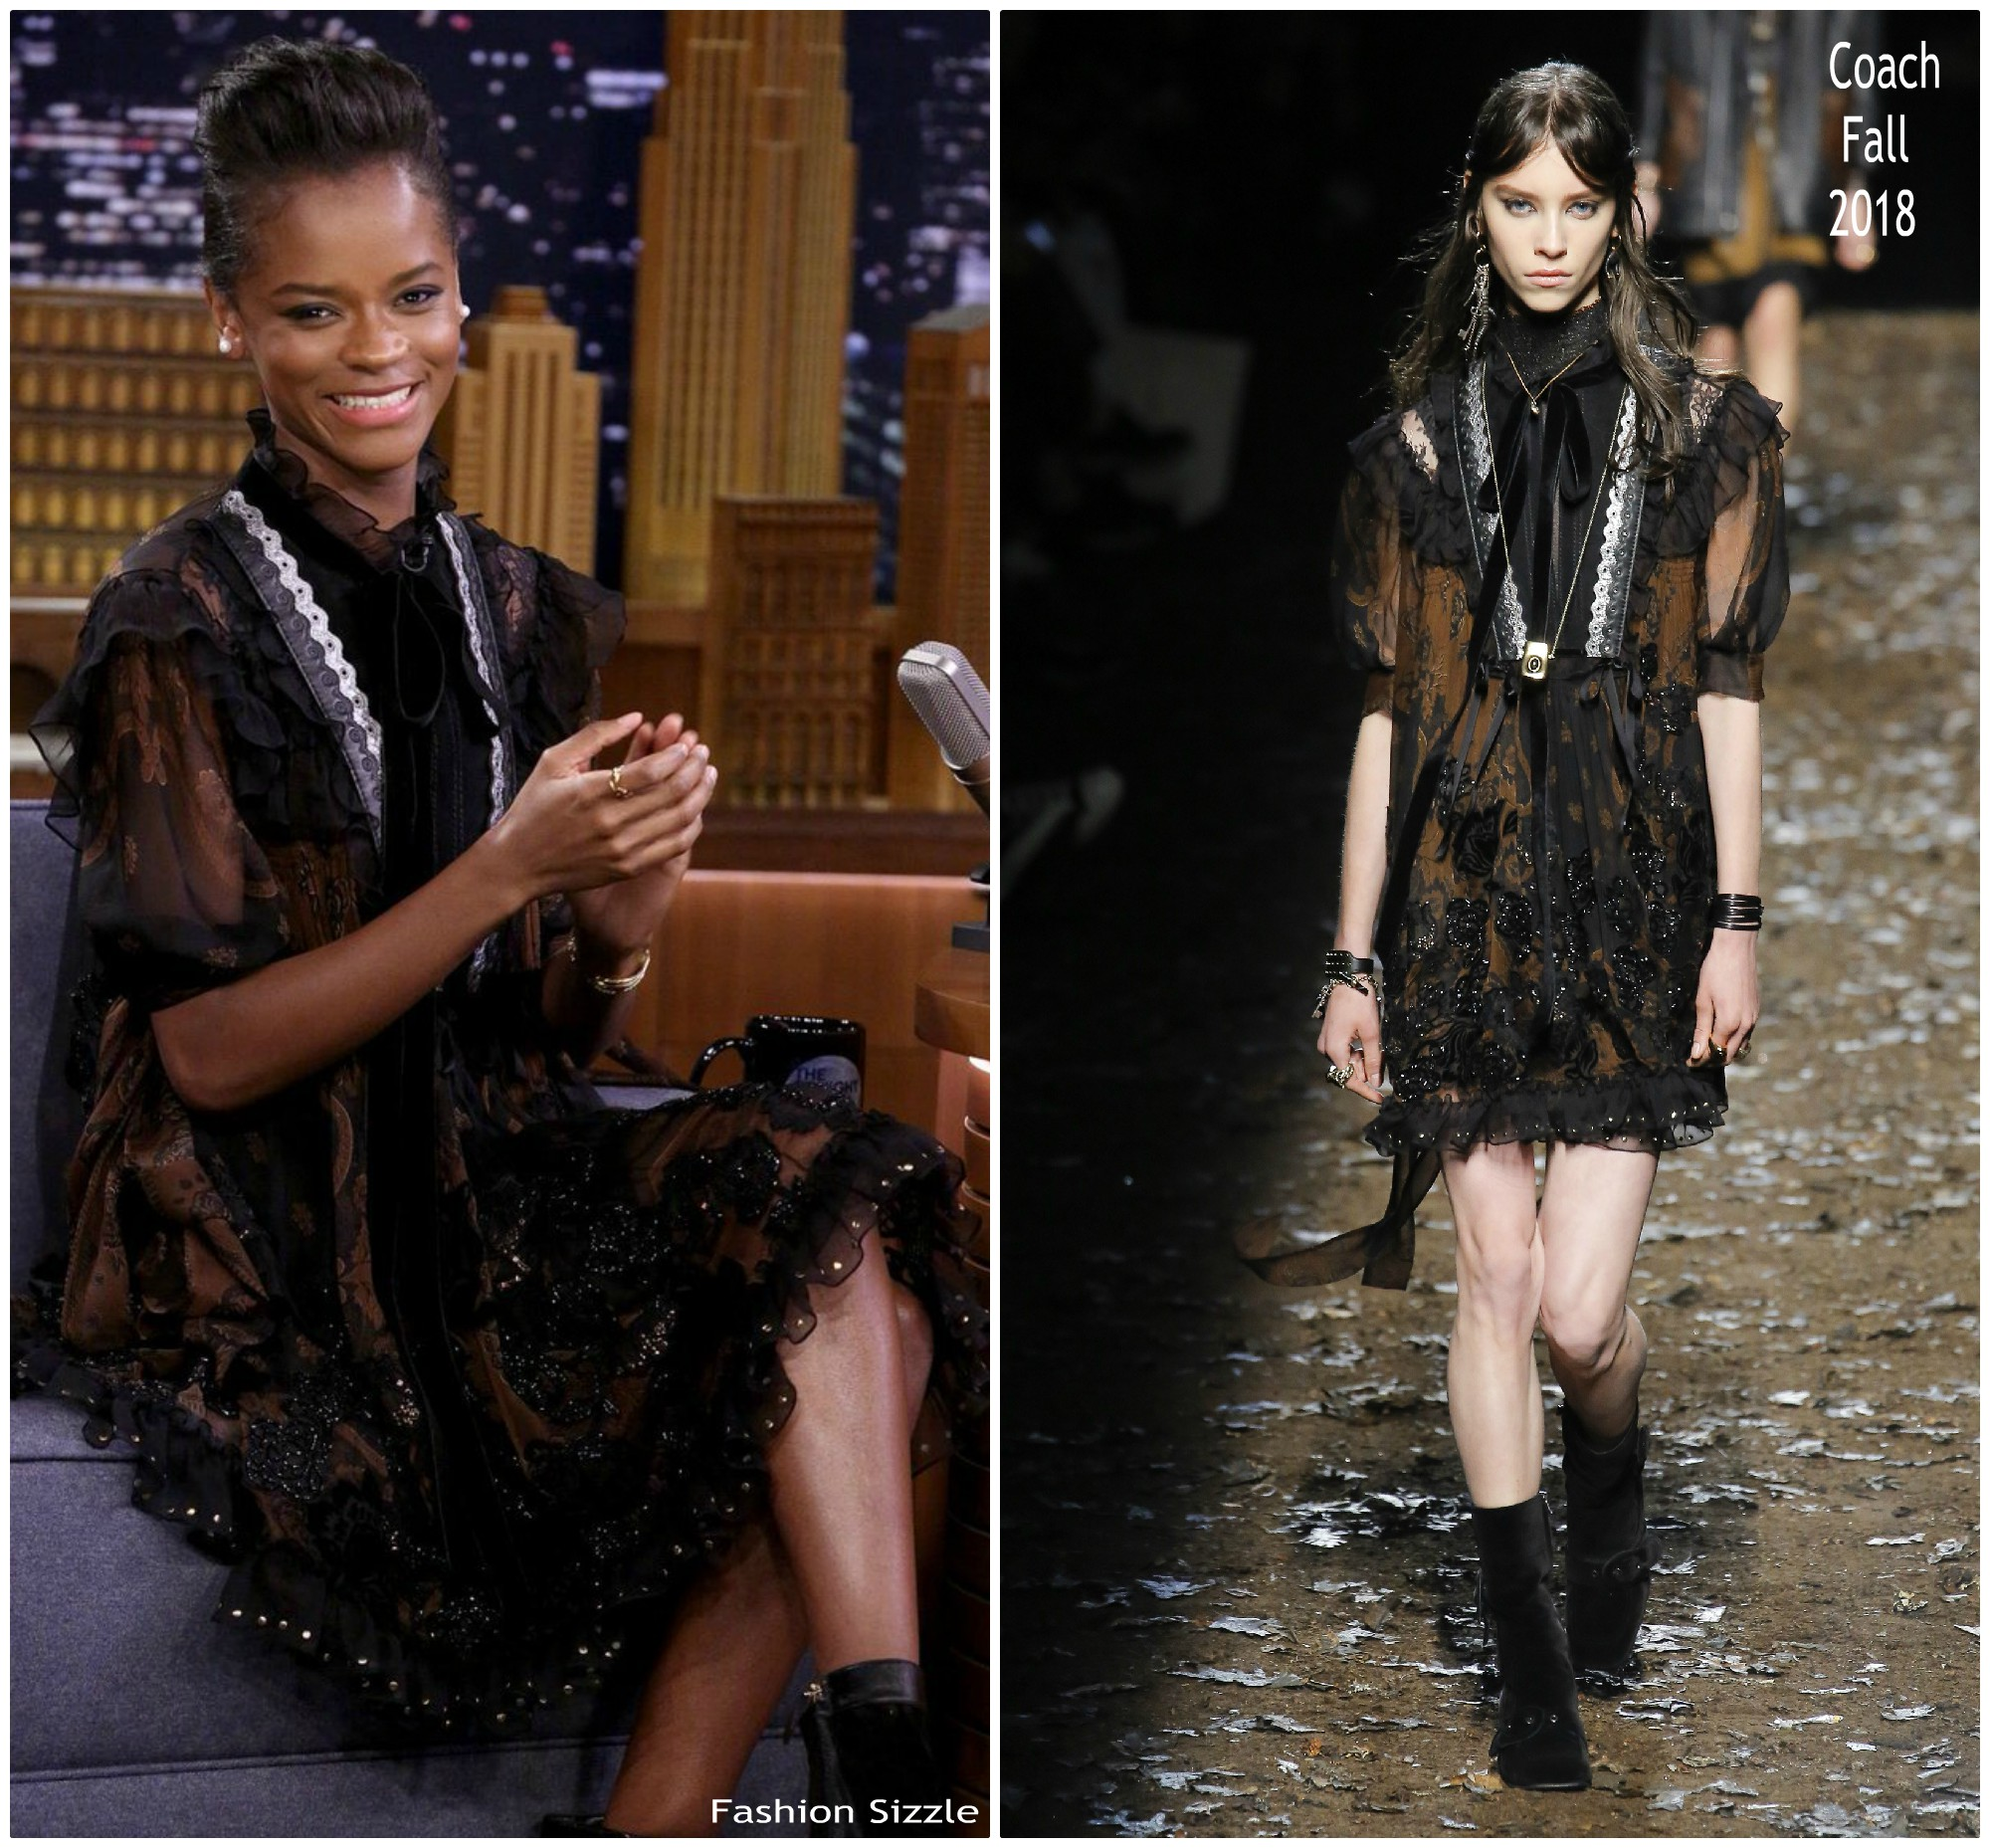 letitia-wright-in-coach-the-tonight-show-starring-jimmy-fallon